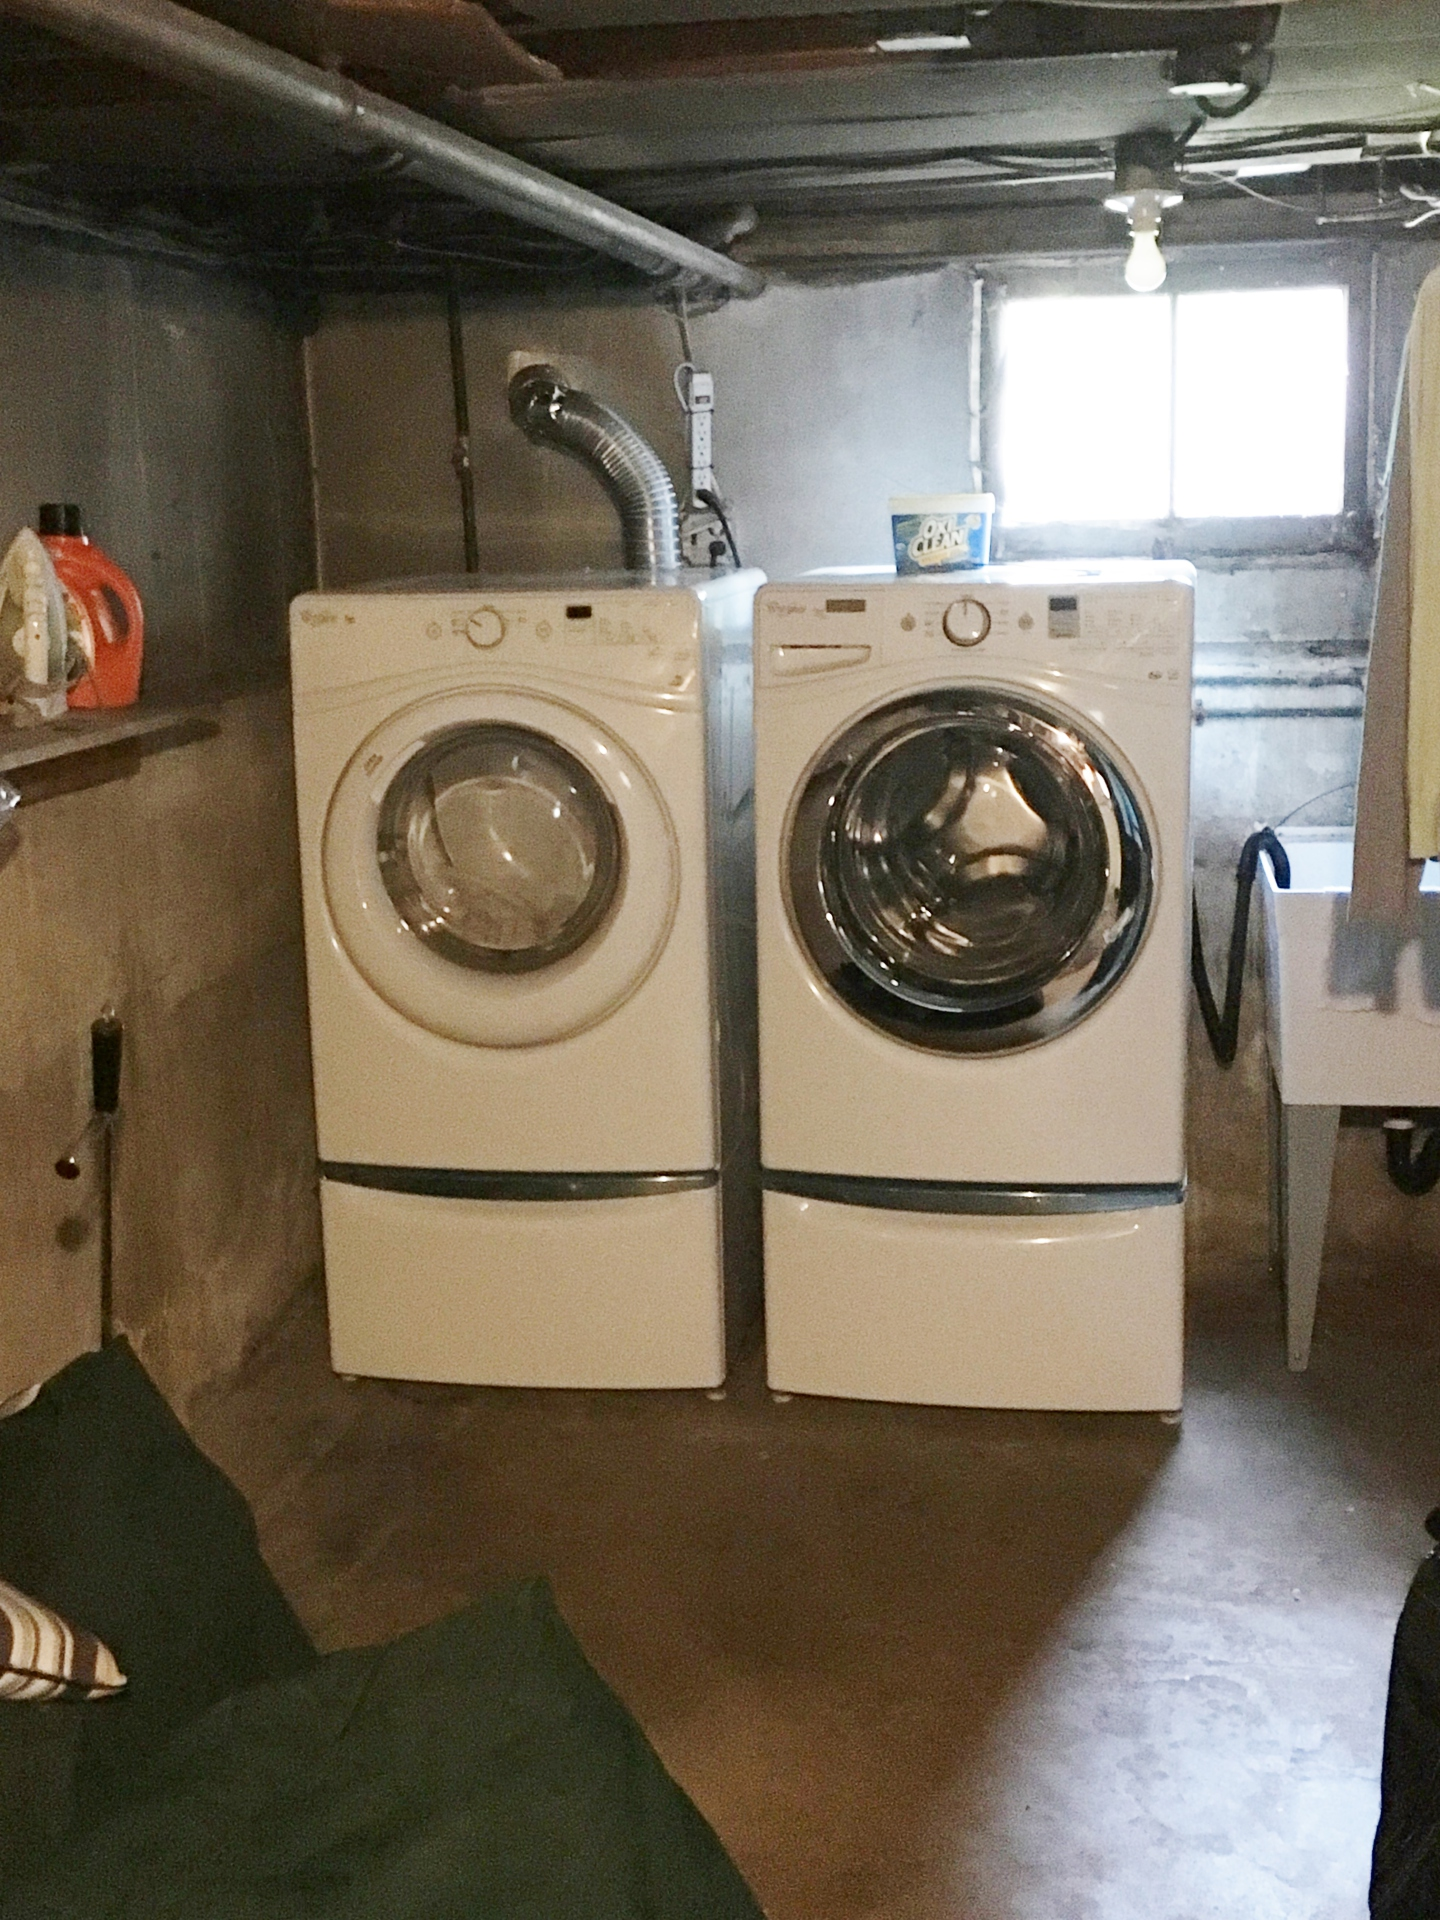 Washer Washer on the wall - choosing a washer and dryer